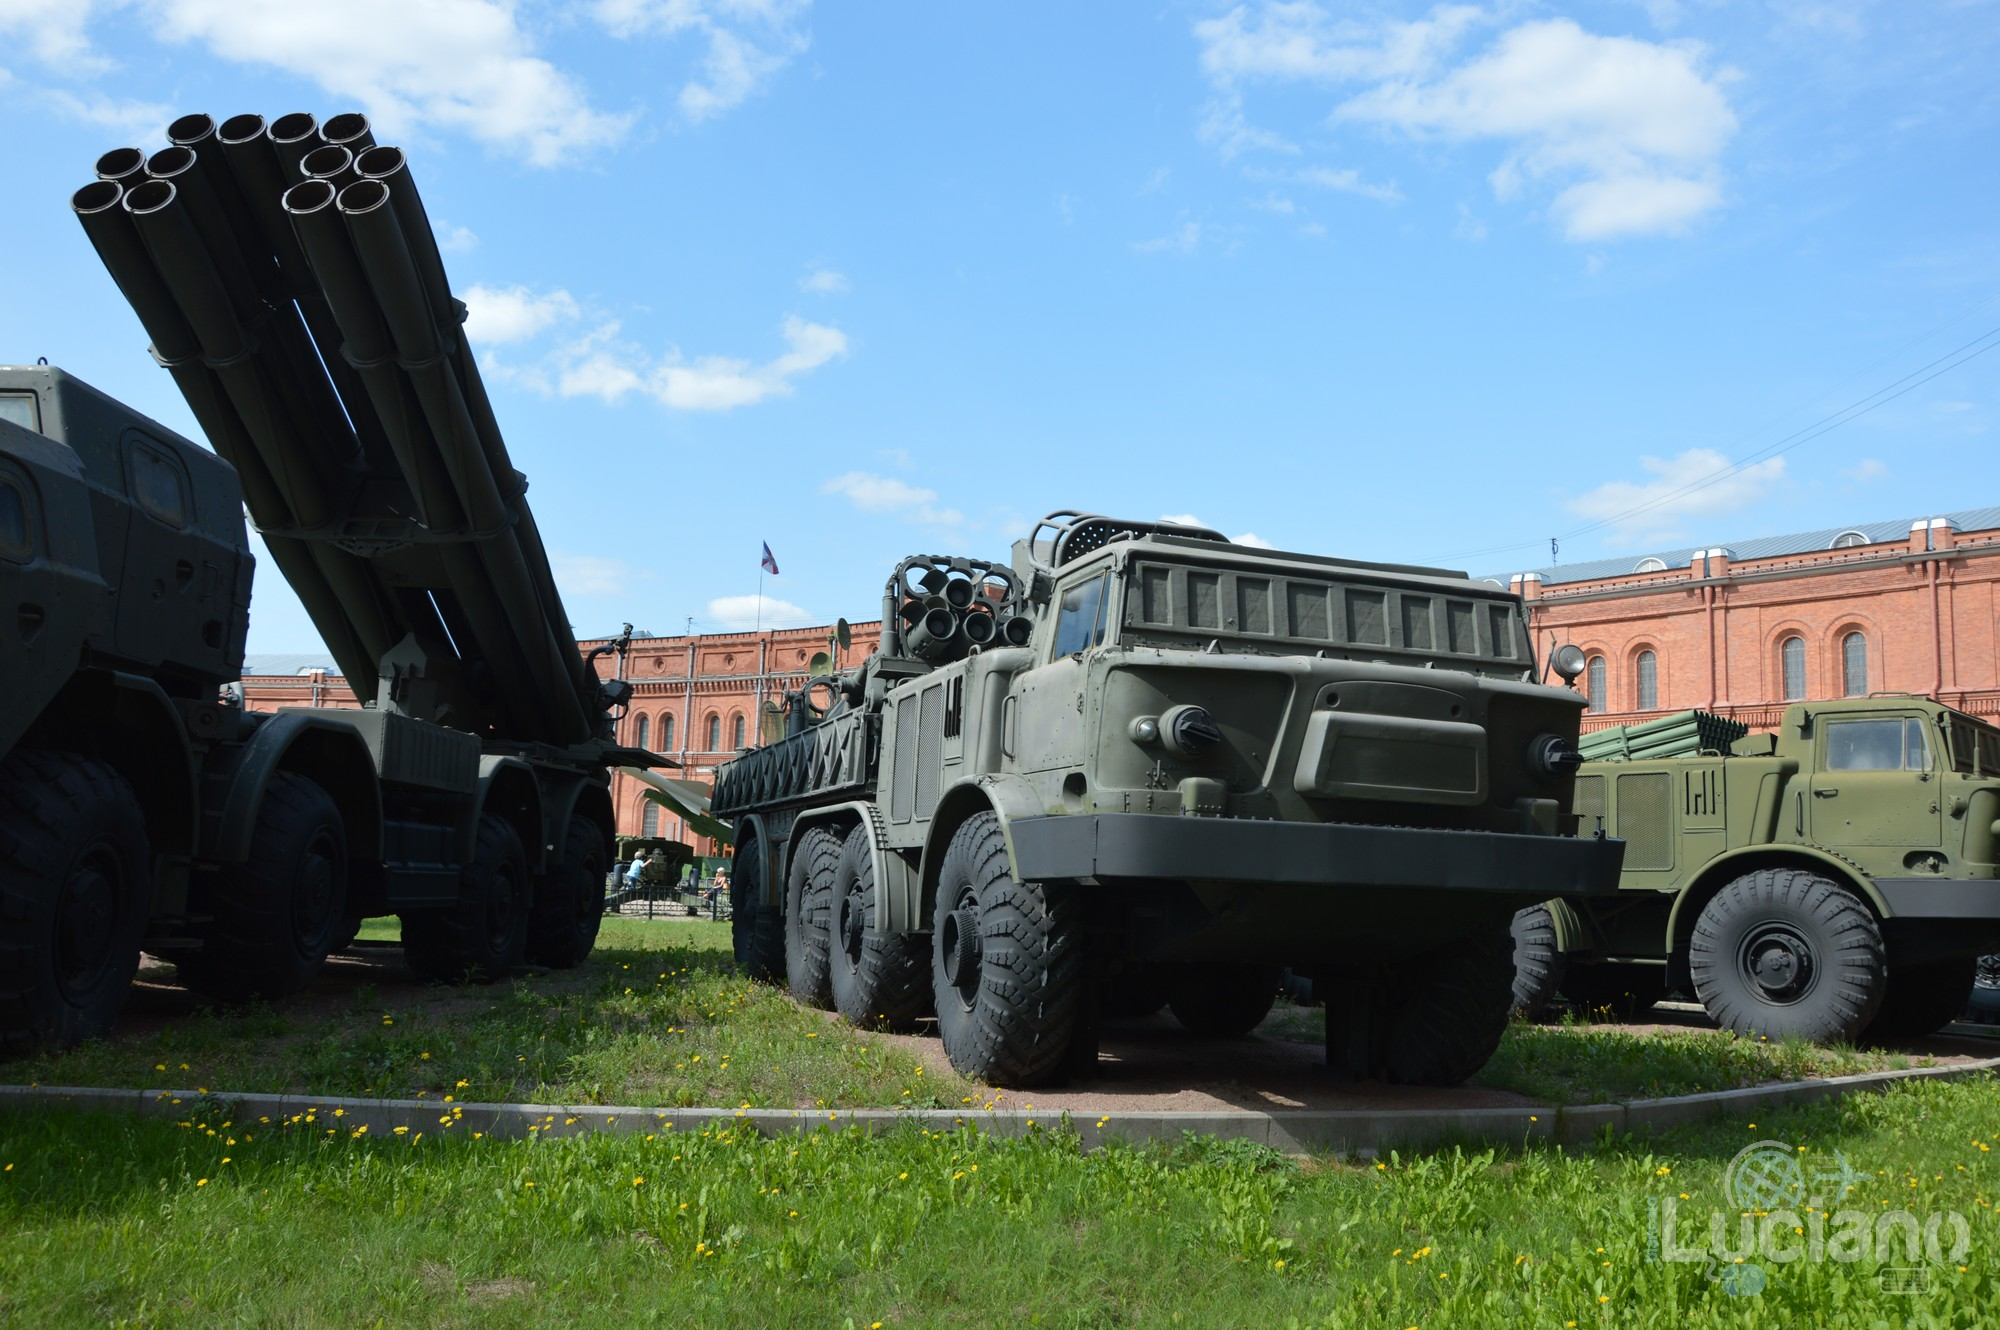 Military-Historical-Museum-of-Artillery-Engineer-and-Signal-Corps-St-Petersburg-Russia-Luciano-Blancato- (28)